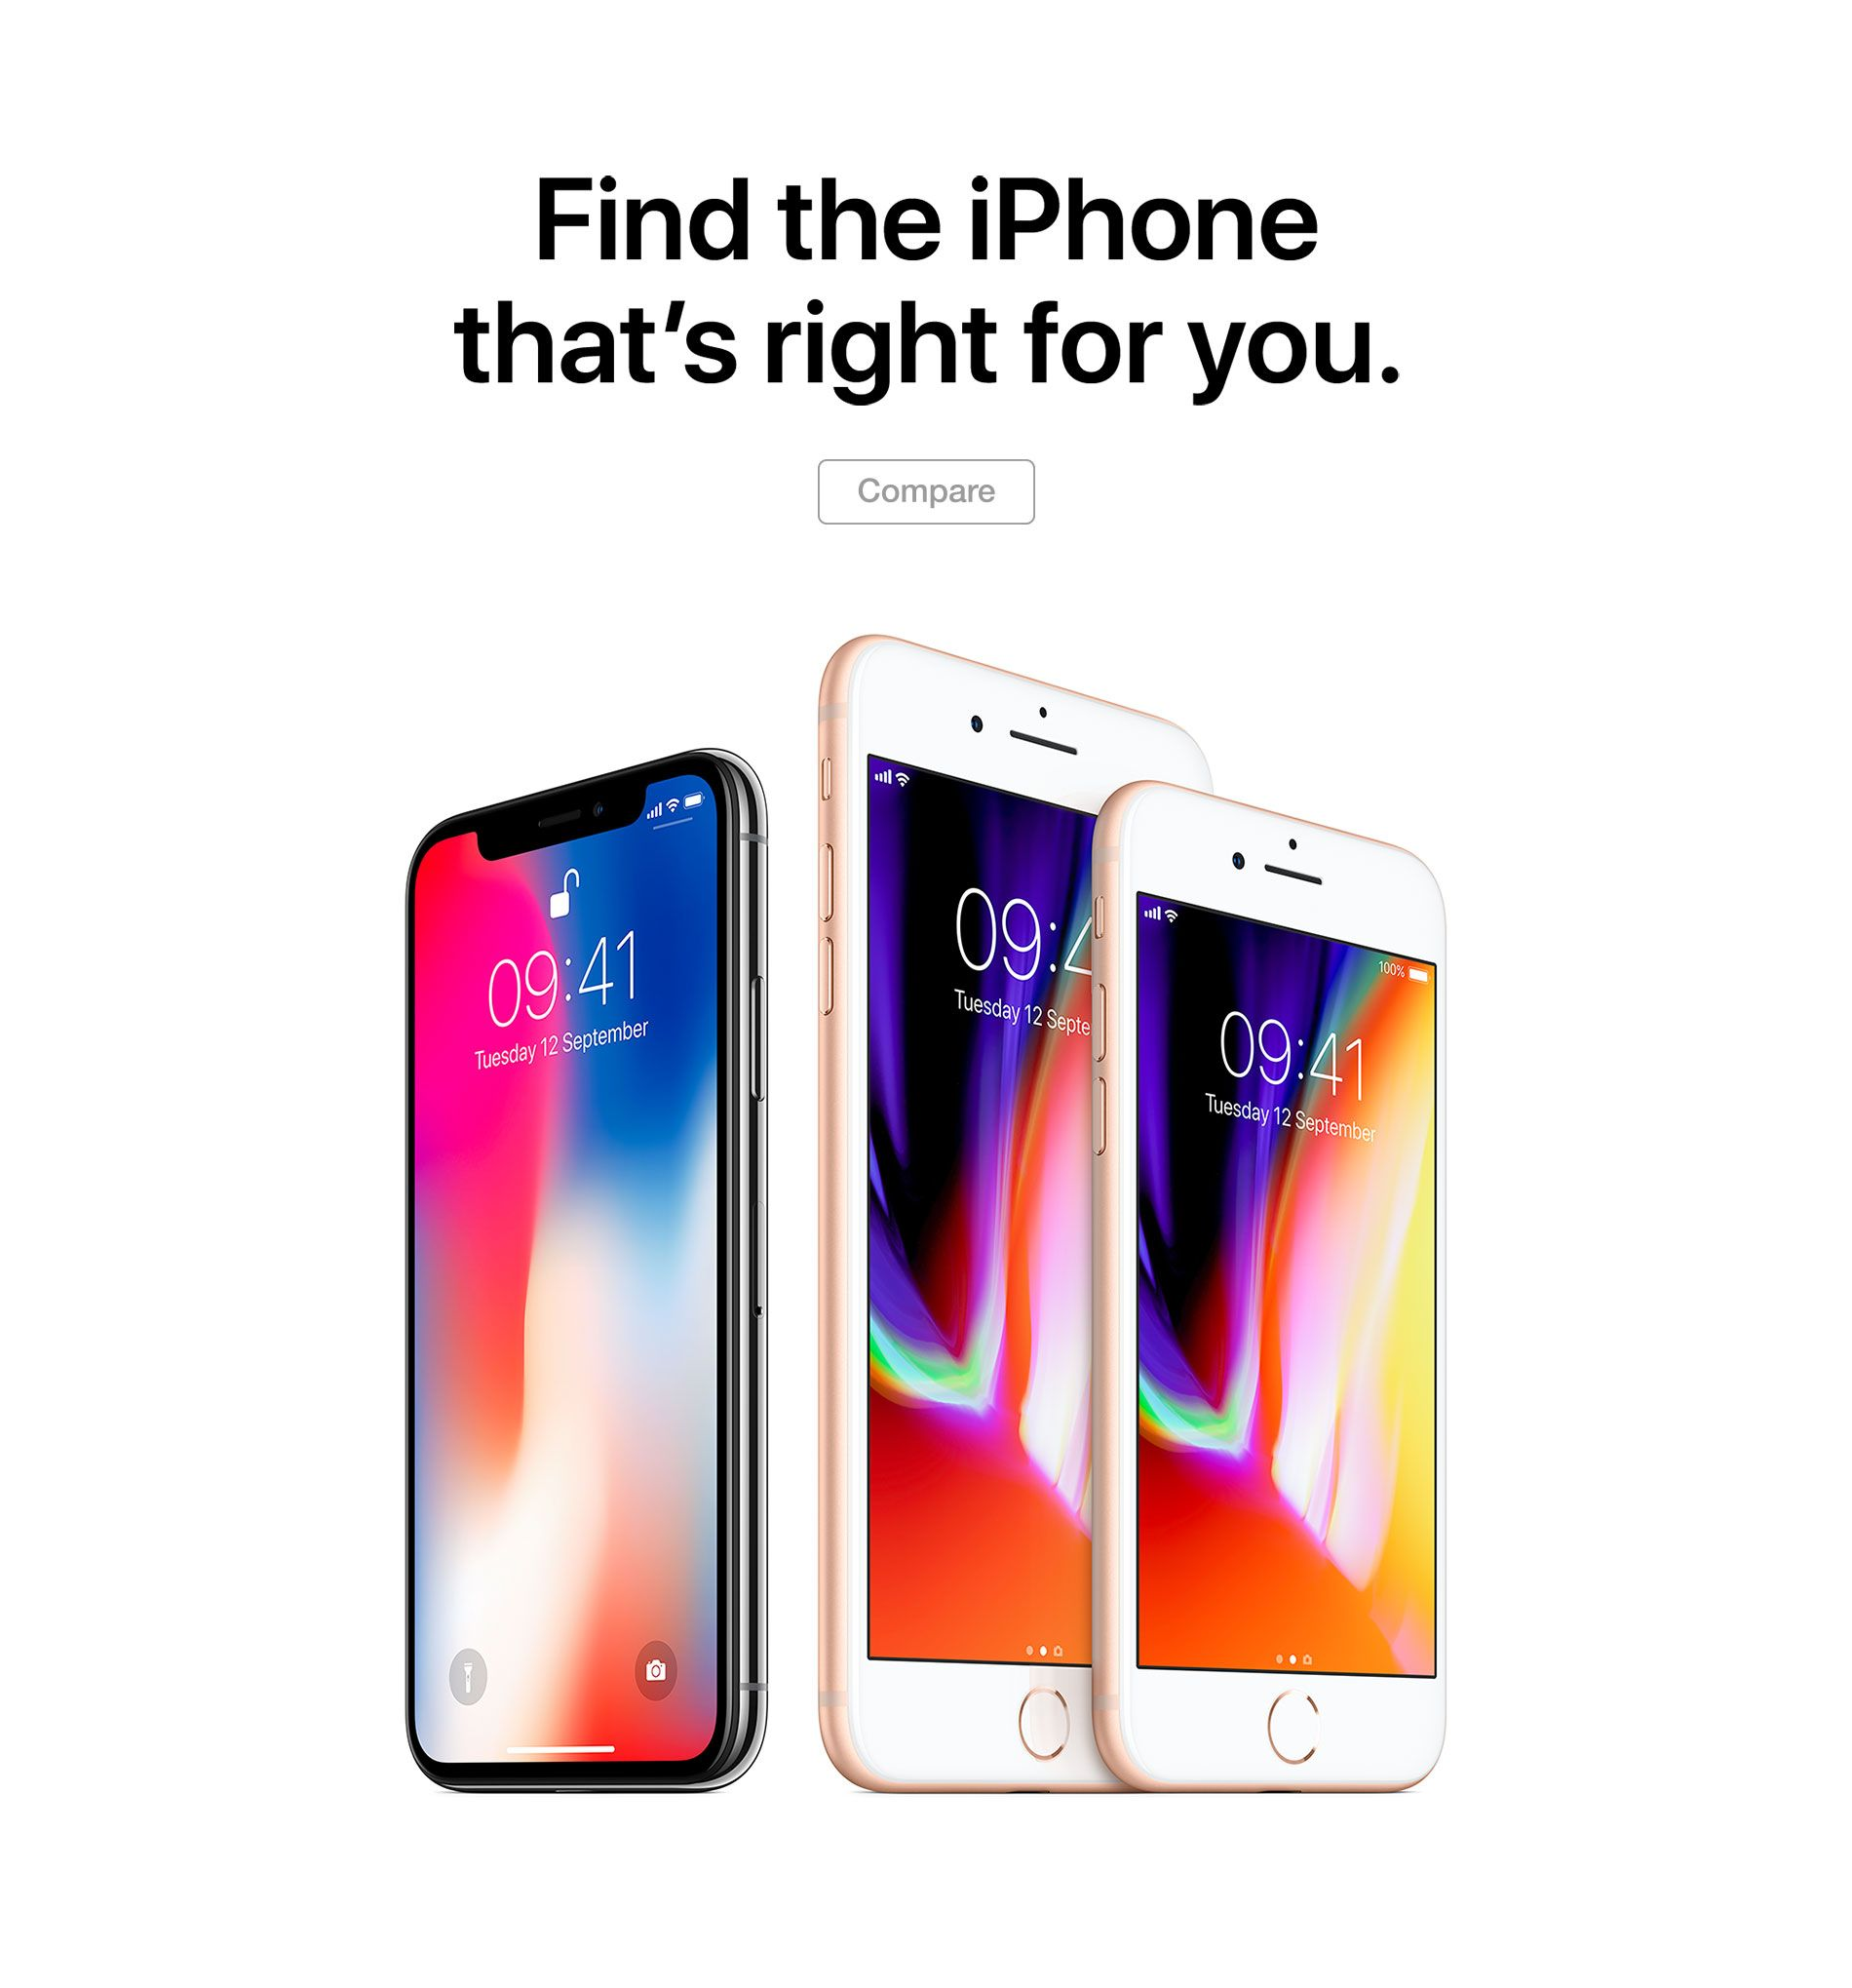 Find the iPhone that's right for you.